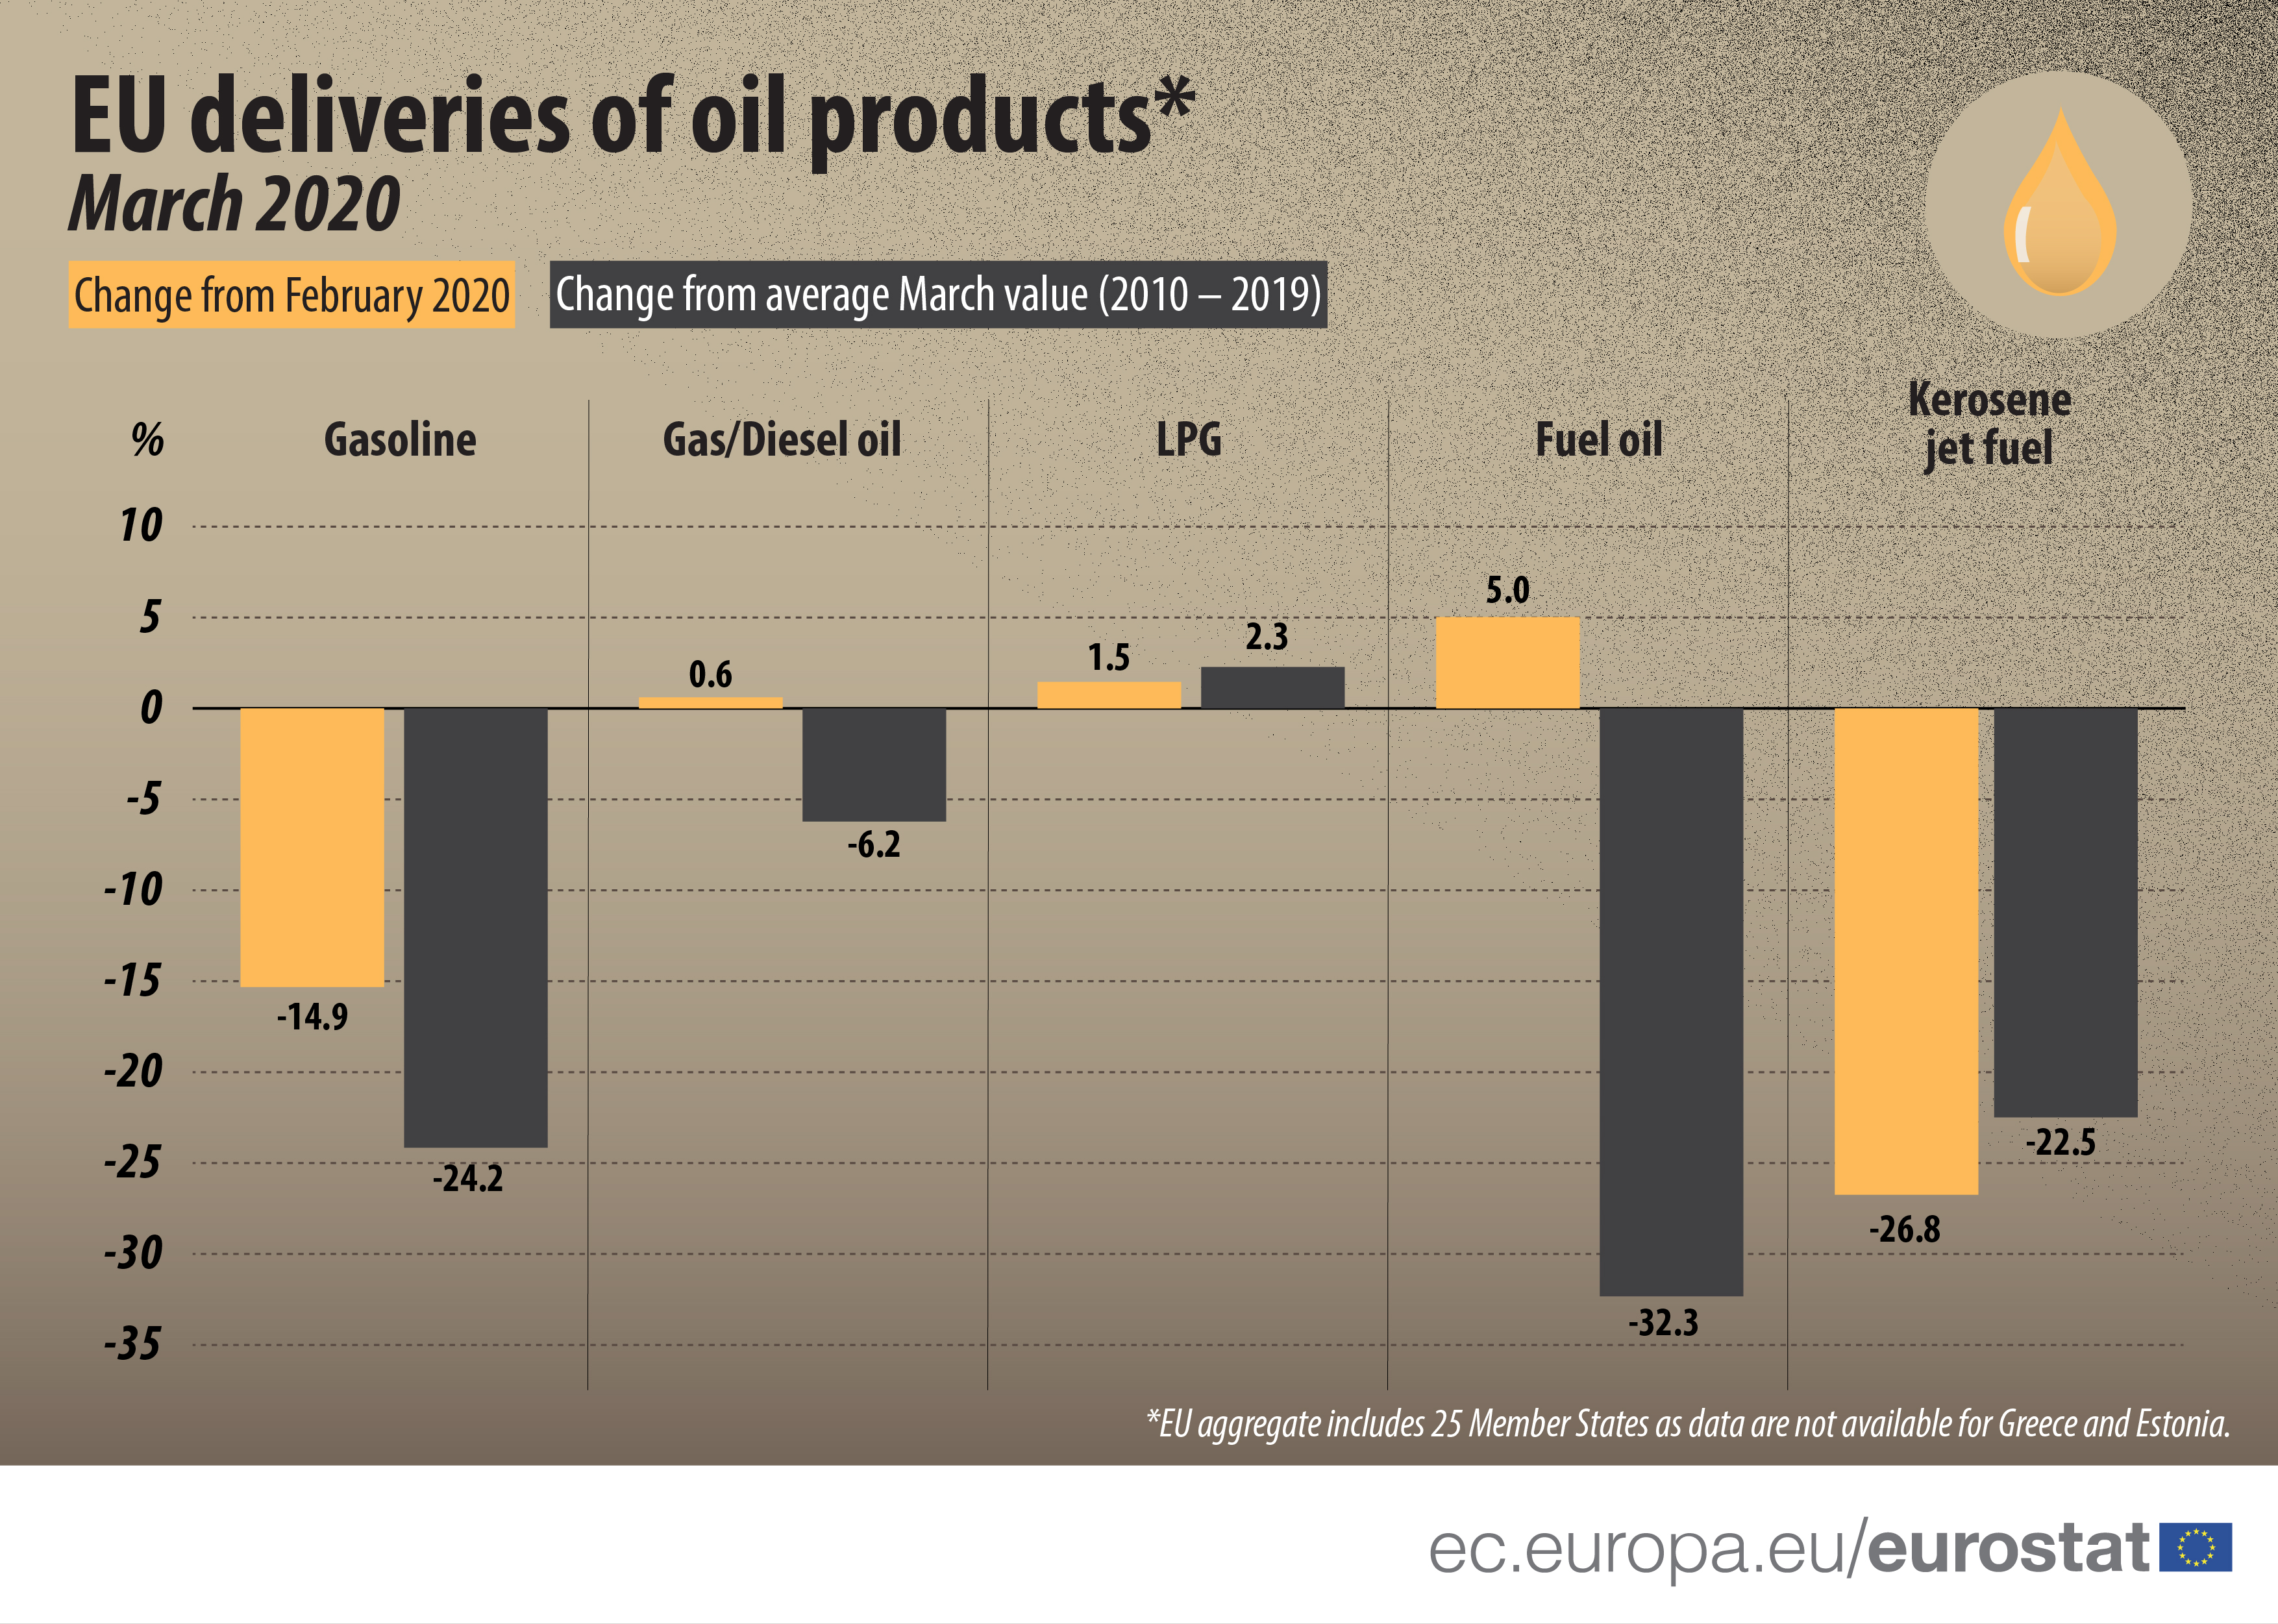 EU deliveries of oil products, March 2020